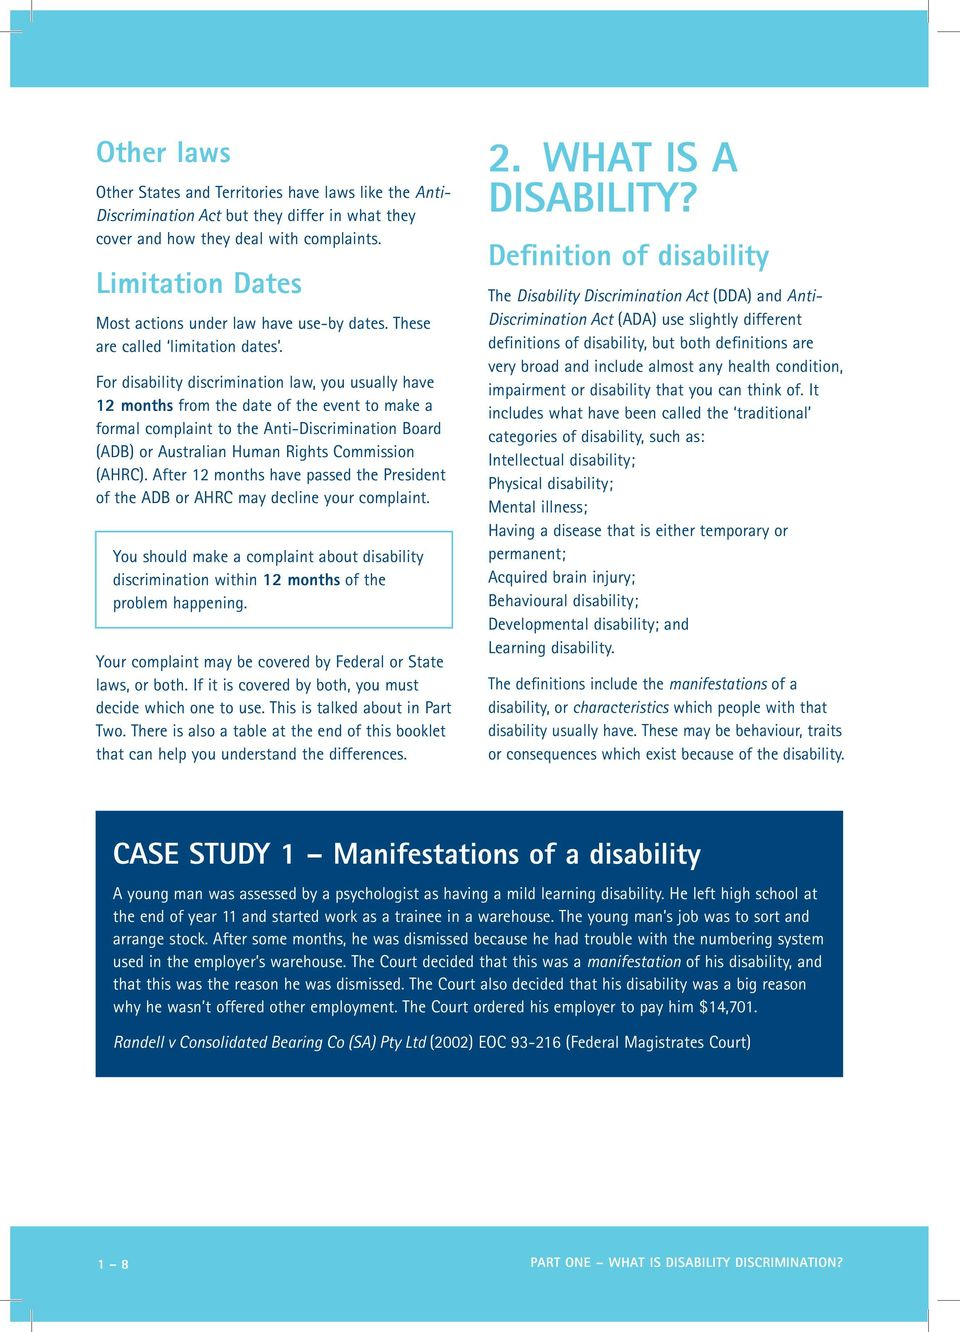 For disability discrimination law, you usually have 12 months from the date of the event to make a formal complaint to the Anti-Discrimination Board (ADB) or Australian Human Rights Commission (AHRC).